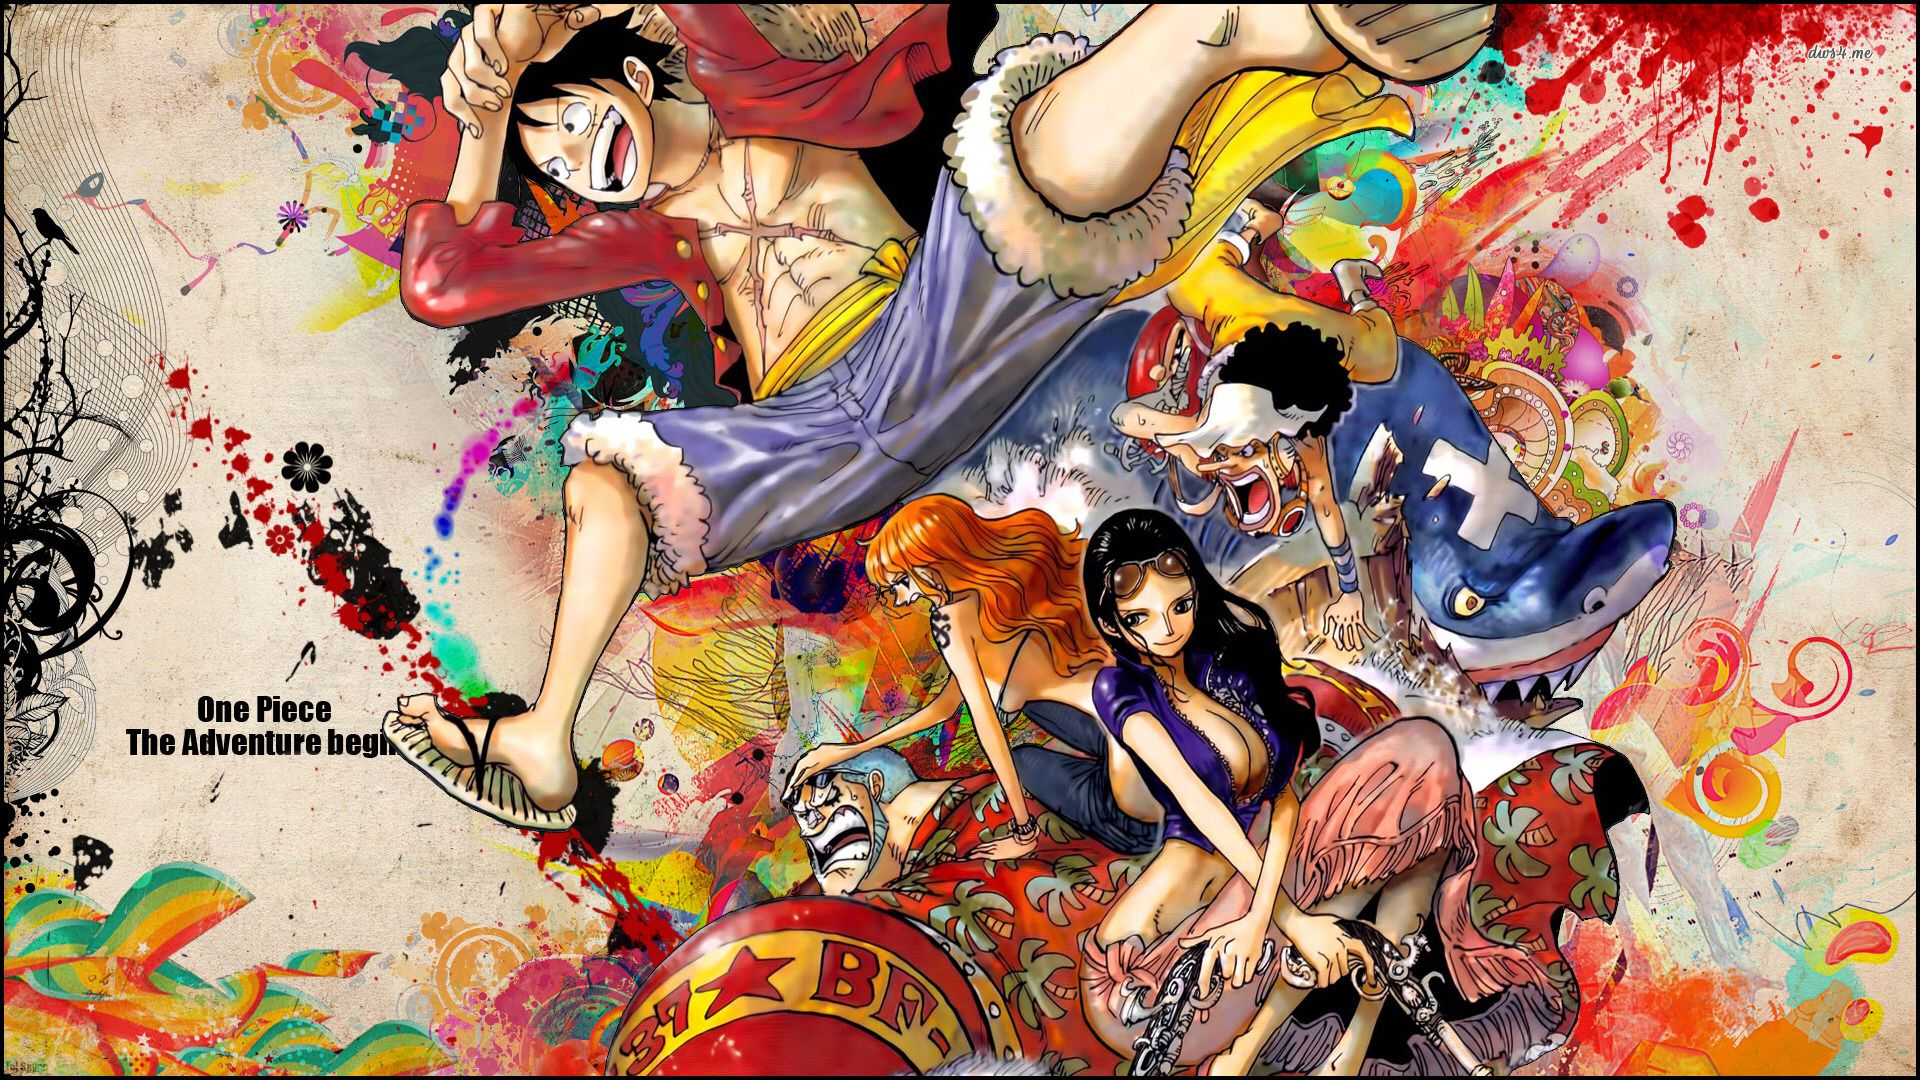 Http Nobon Me Wp Content Uploads 2013 03 46071 One Piece